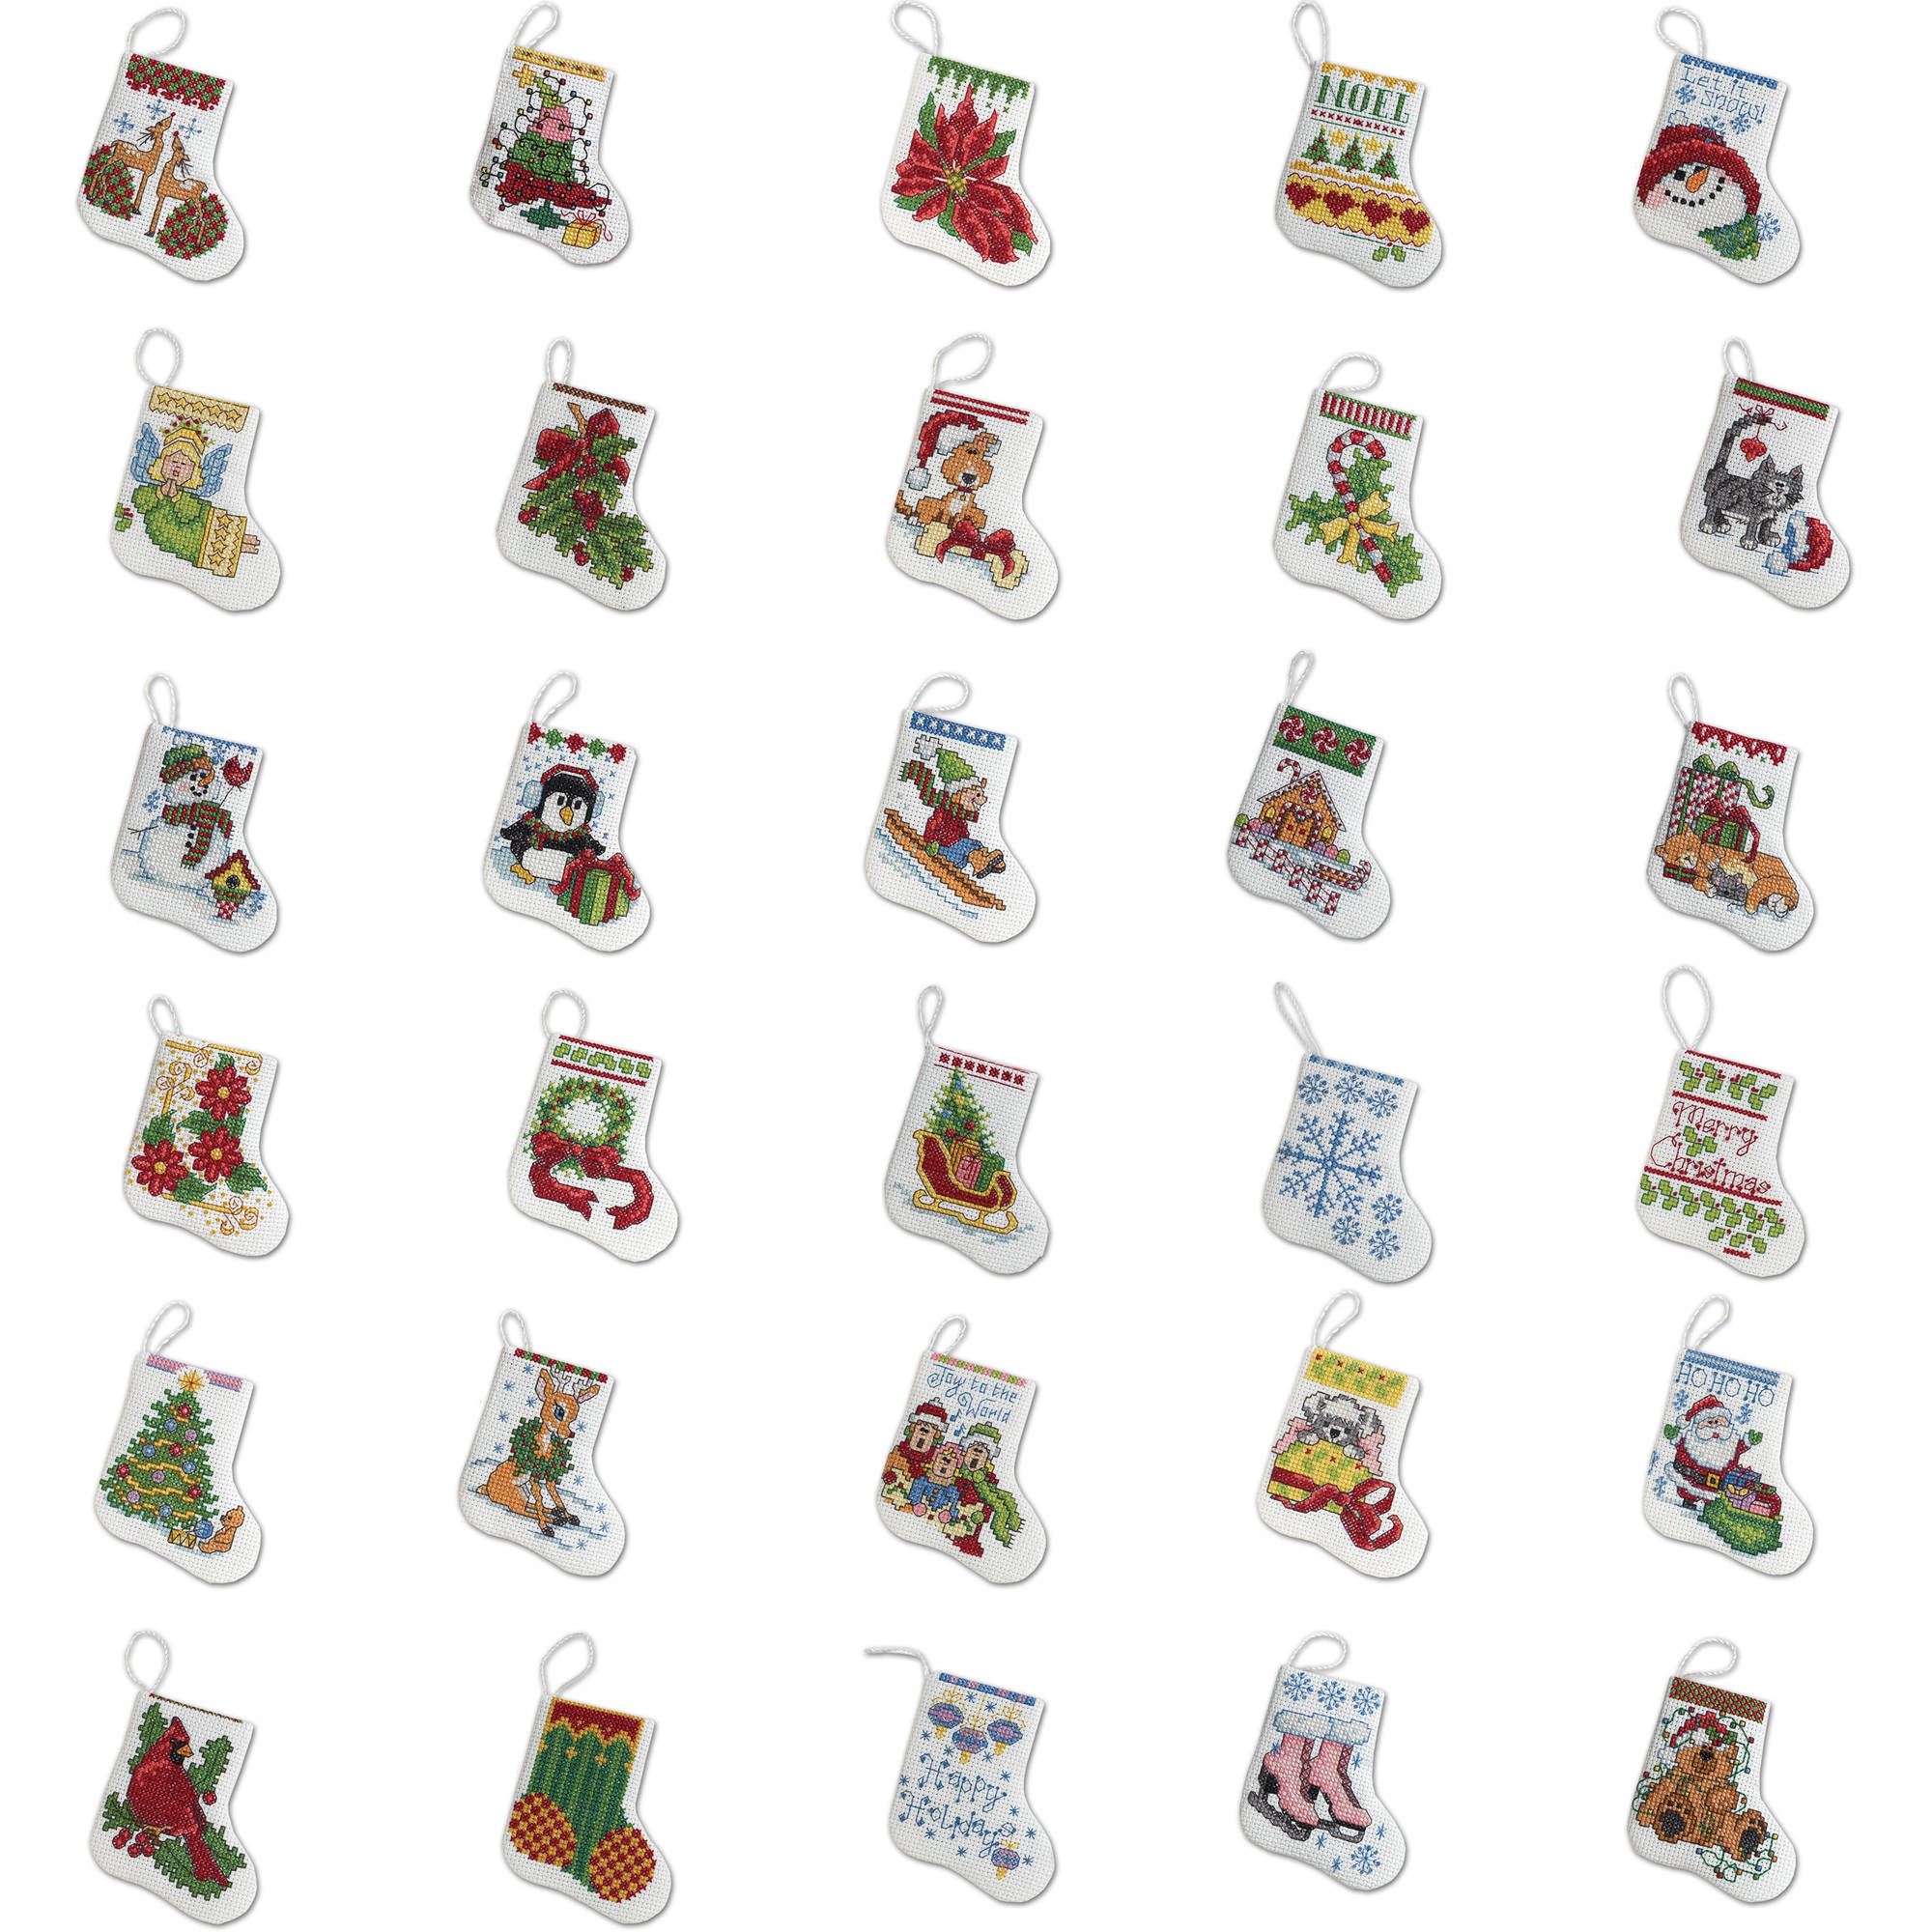 "Bucilla Counted Cross Stitch Ornament Kit by Plaid, More Tiny Stockings, Set of 30,   each approx. 2 1/2 "" x 3"""